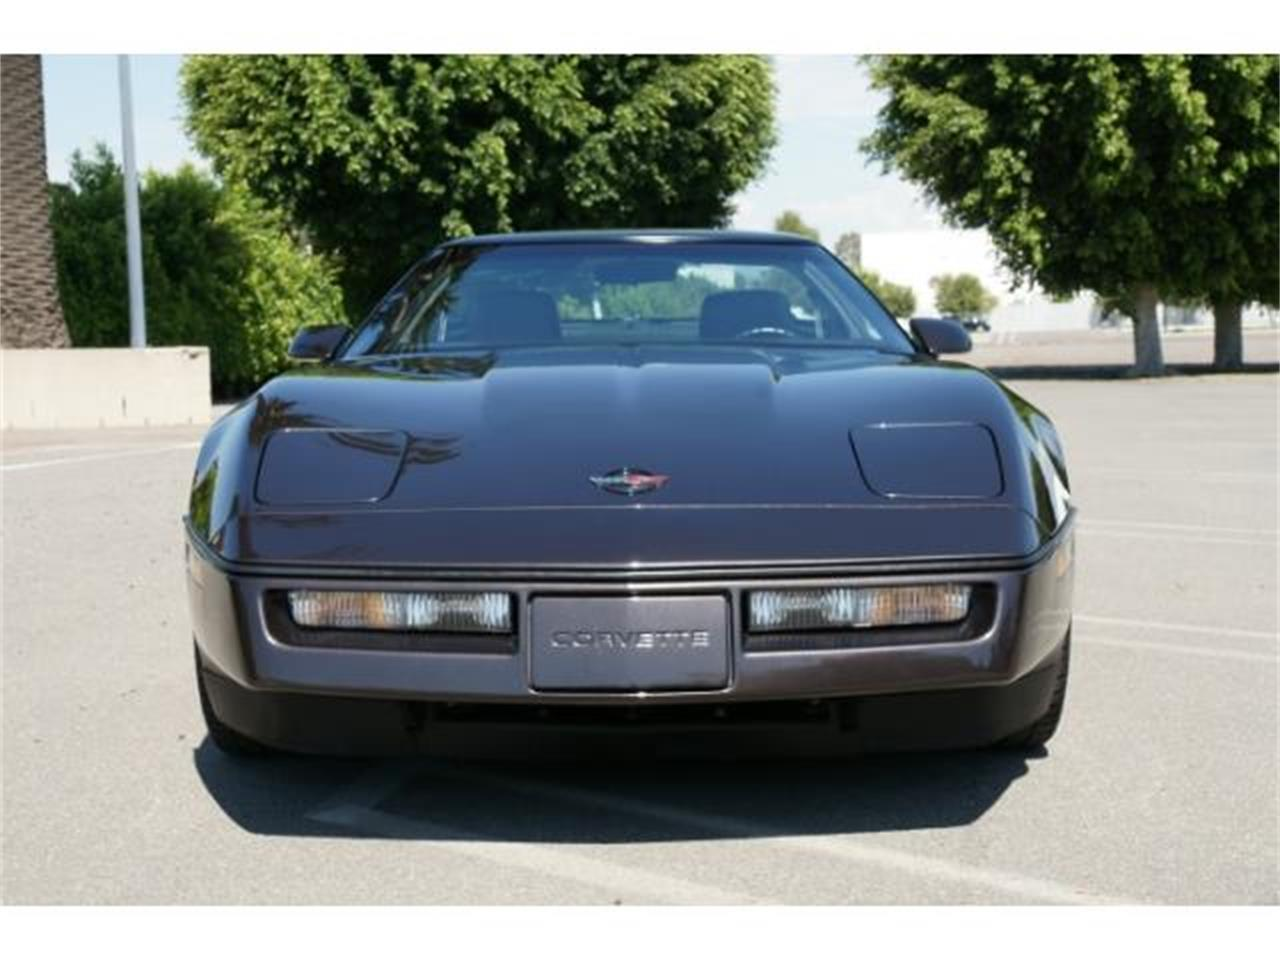 Large Picture of '89 Chevrolet Corvette located in California - MZHQ